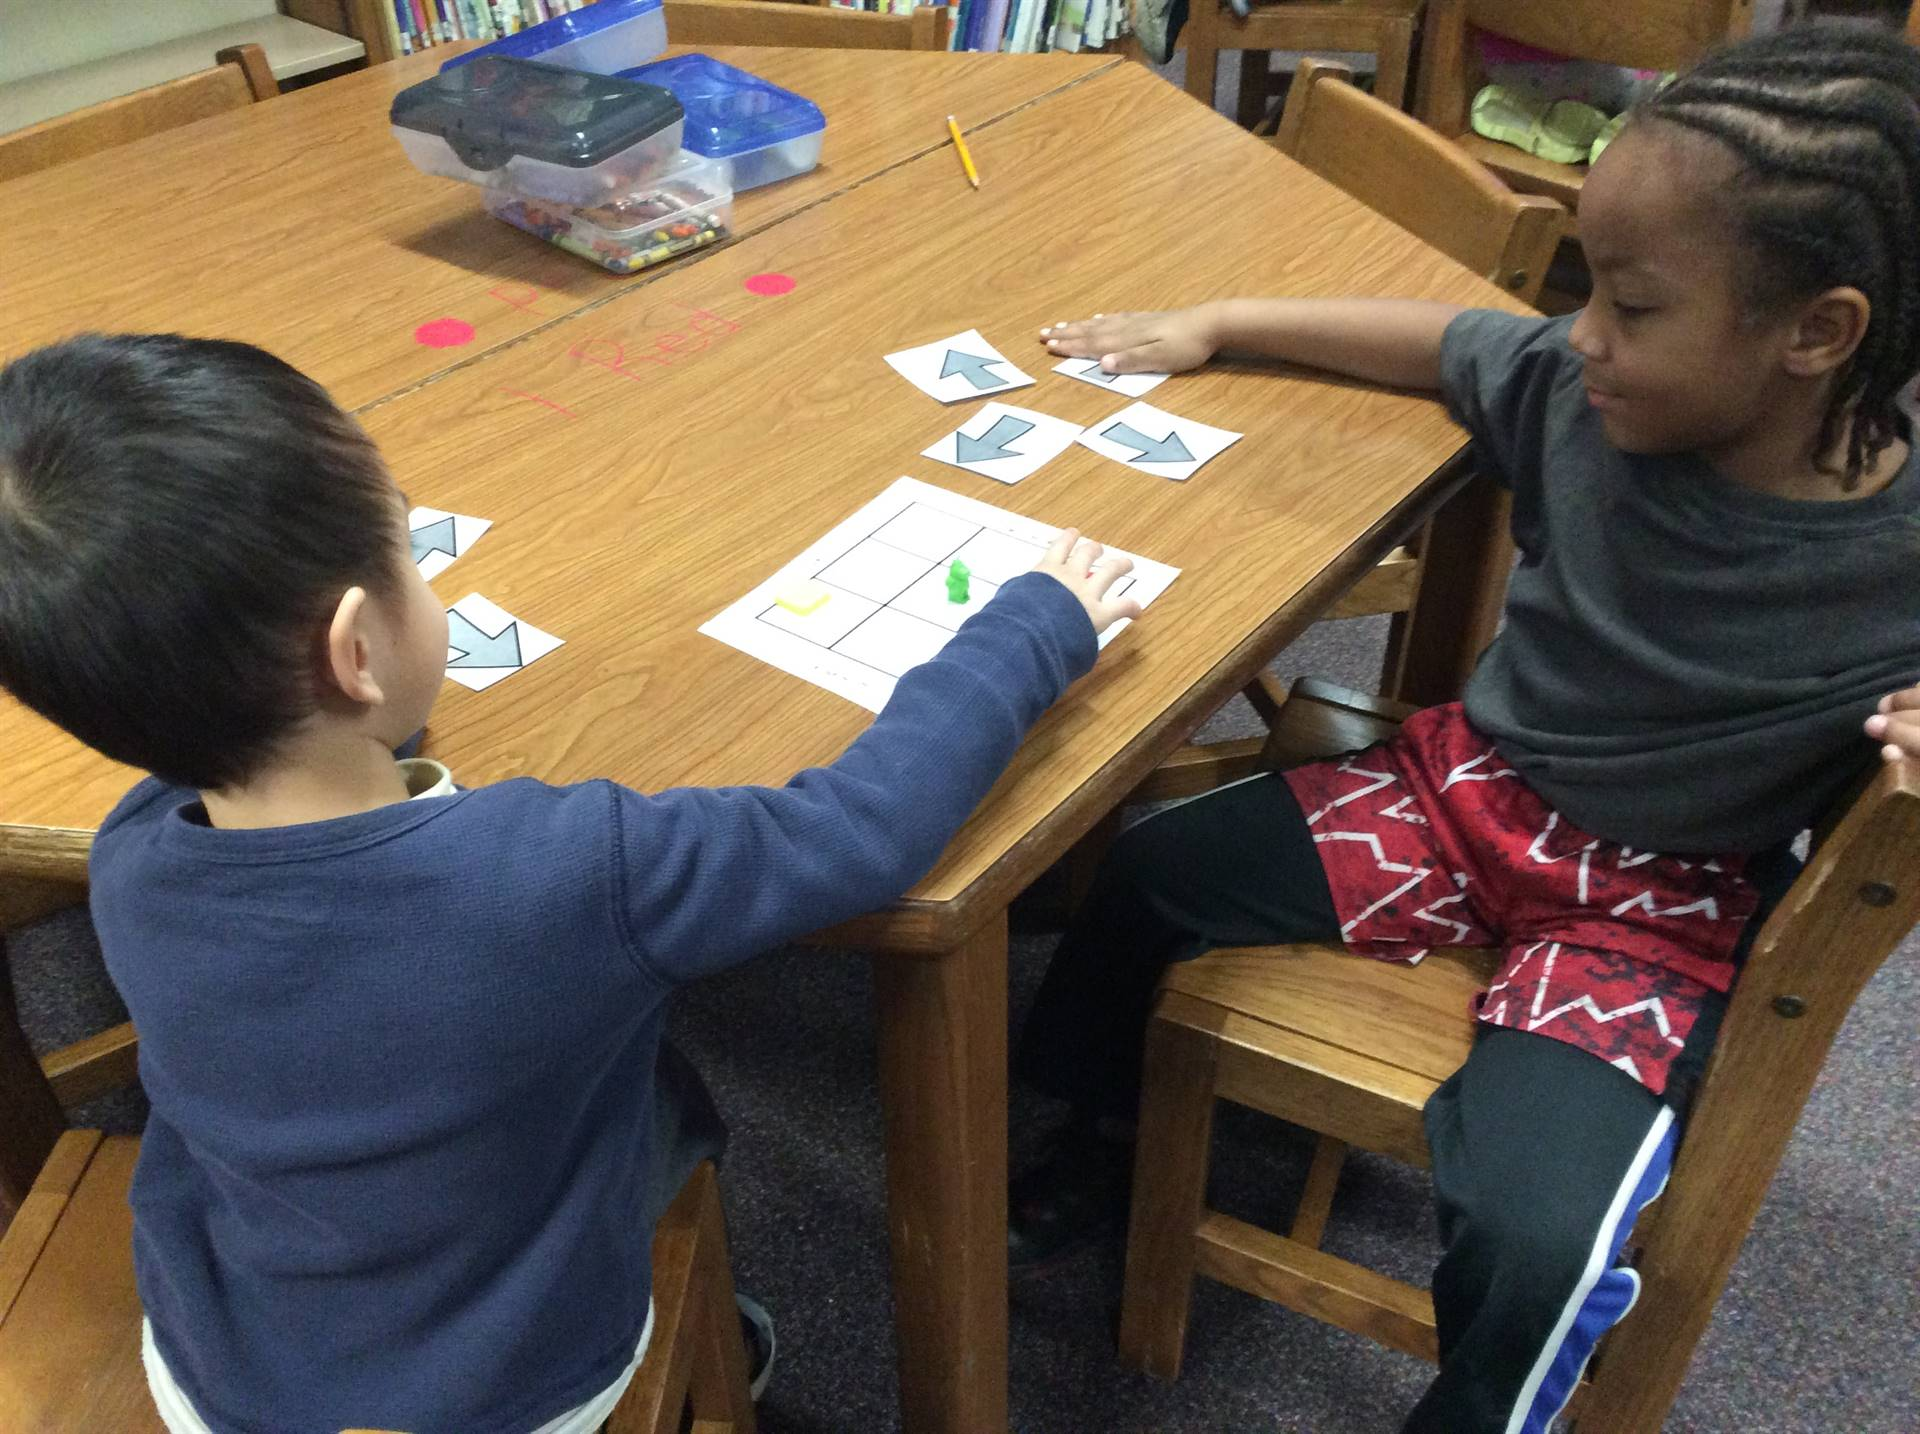 Two students playing a game at a table